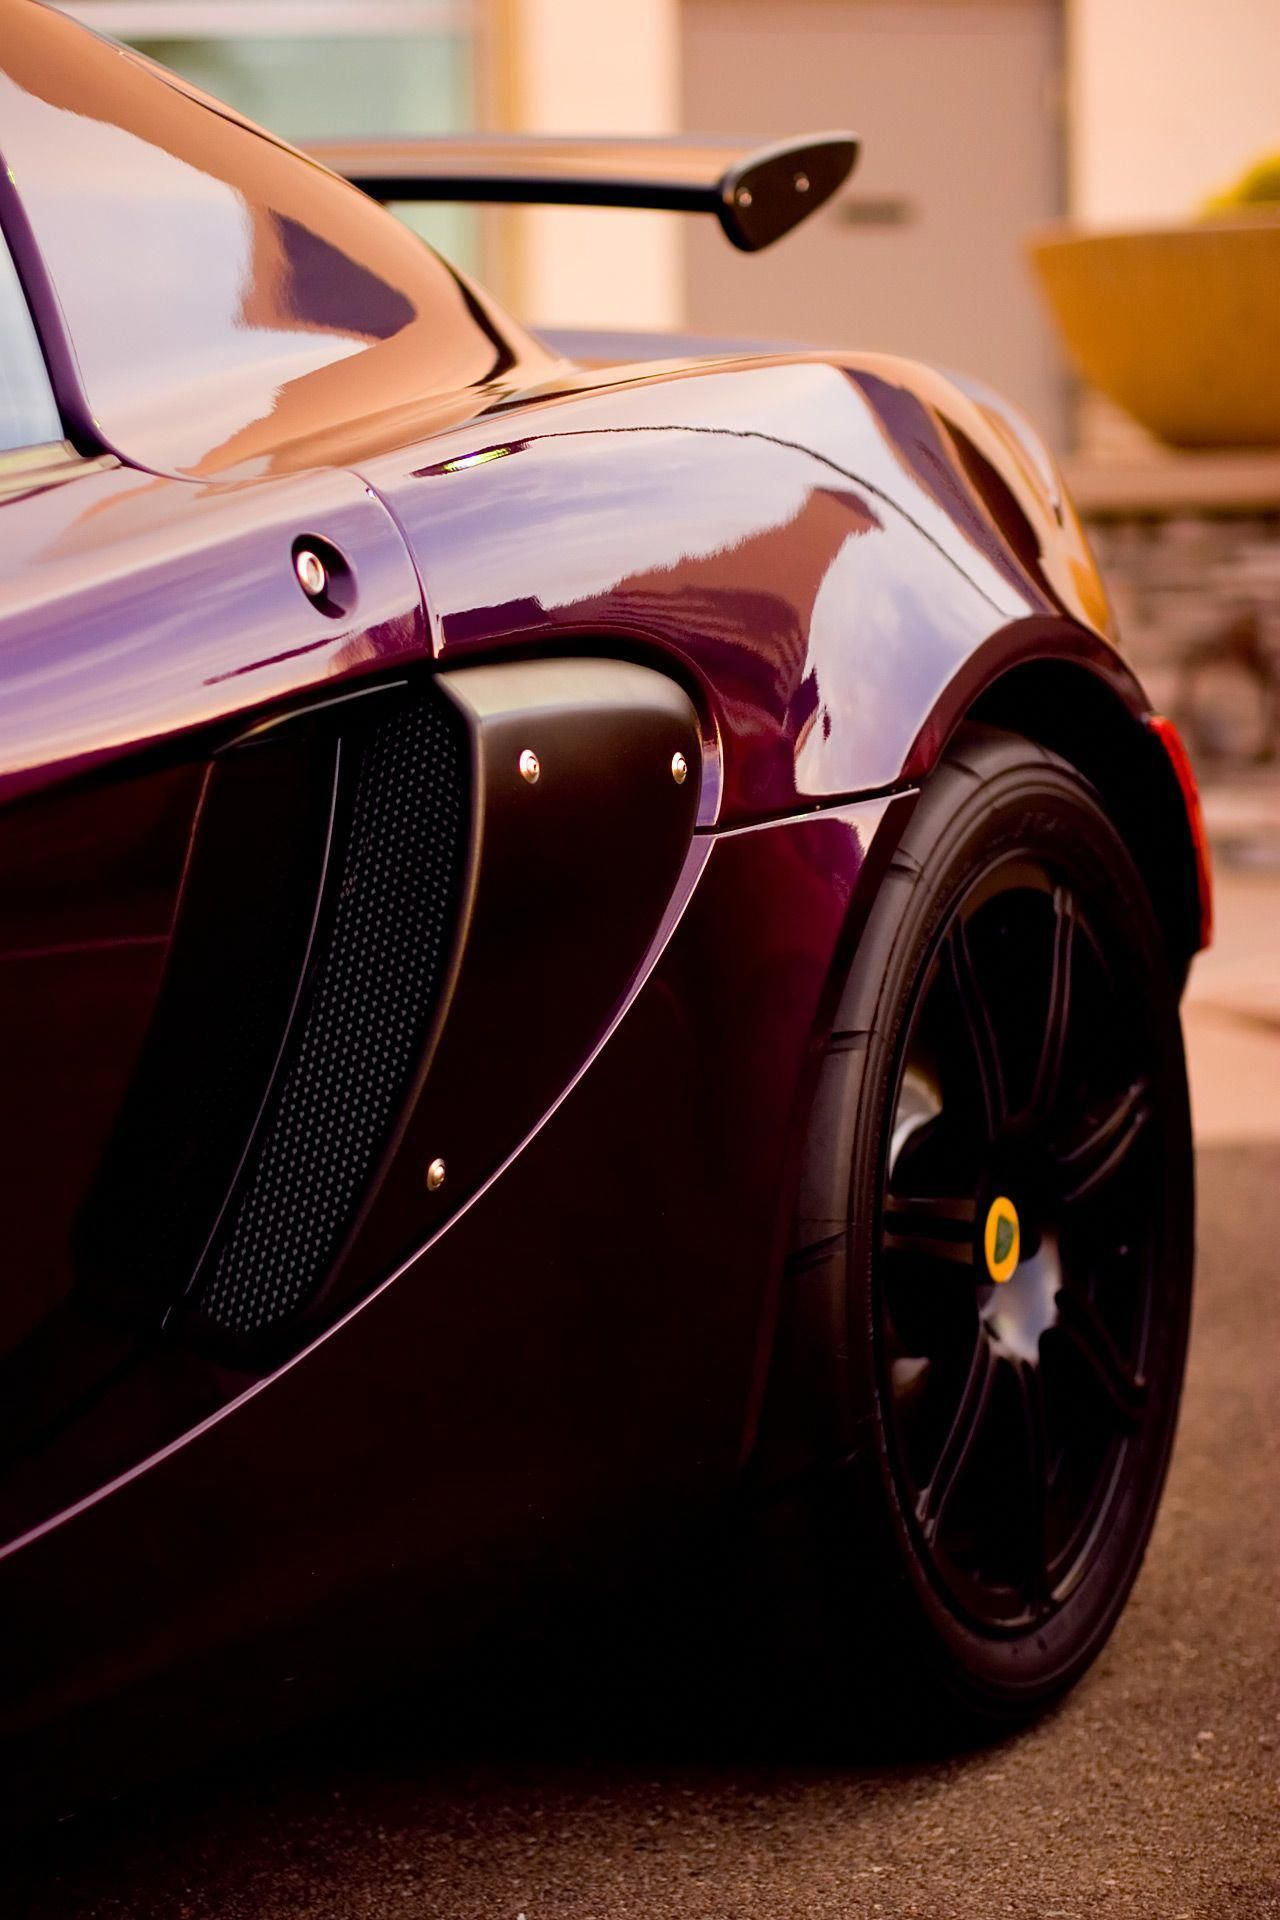 Classy luxury cars These are the best and fastest sports